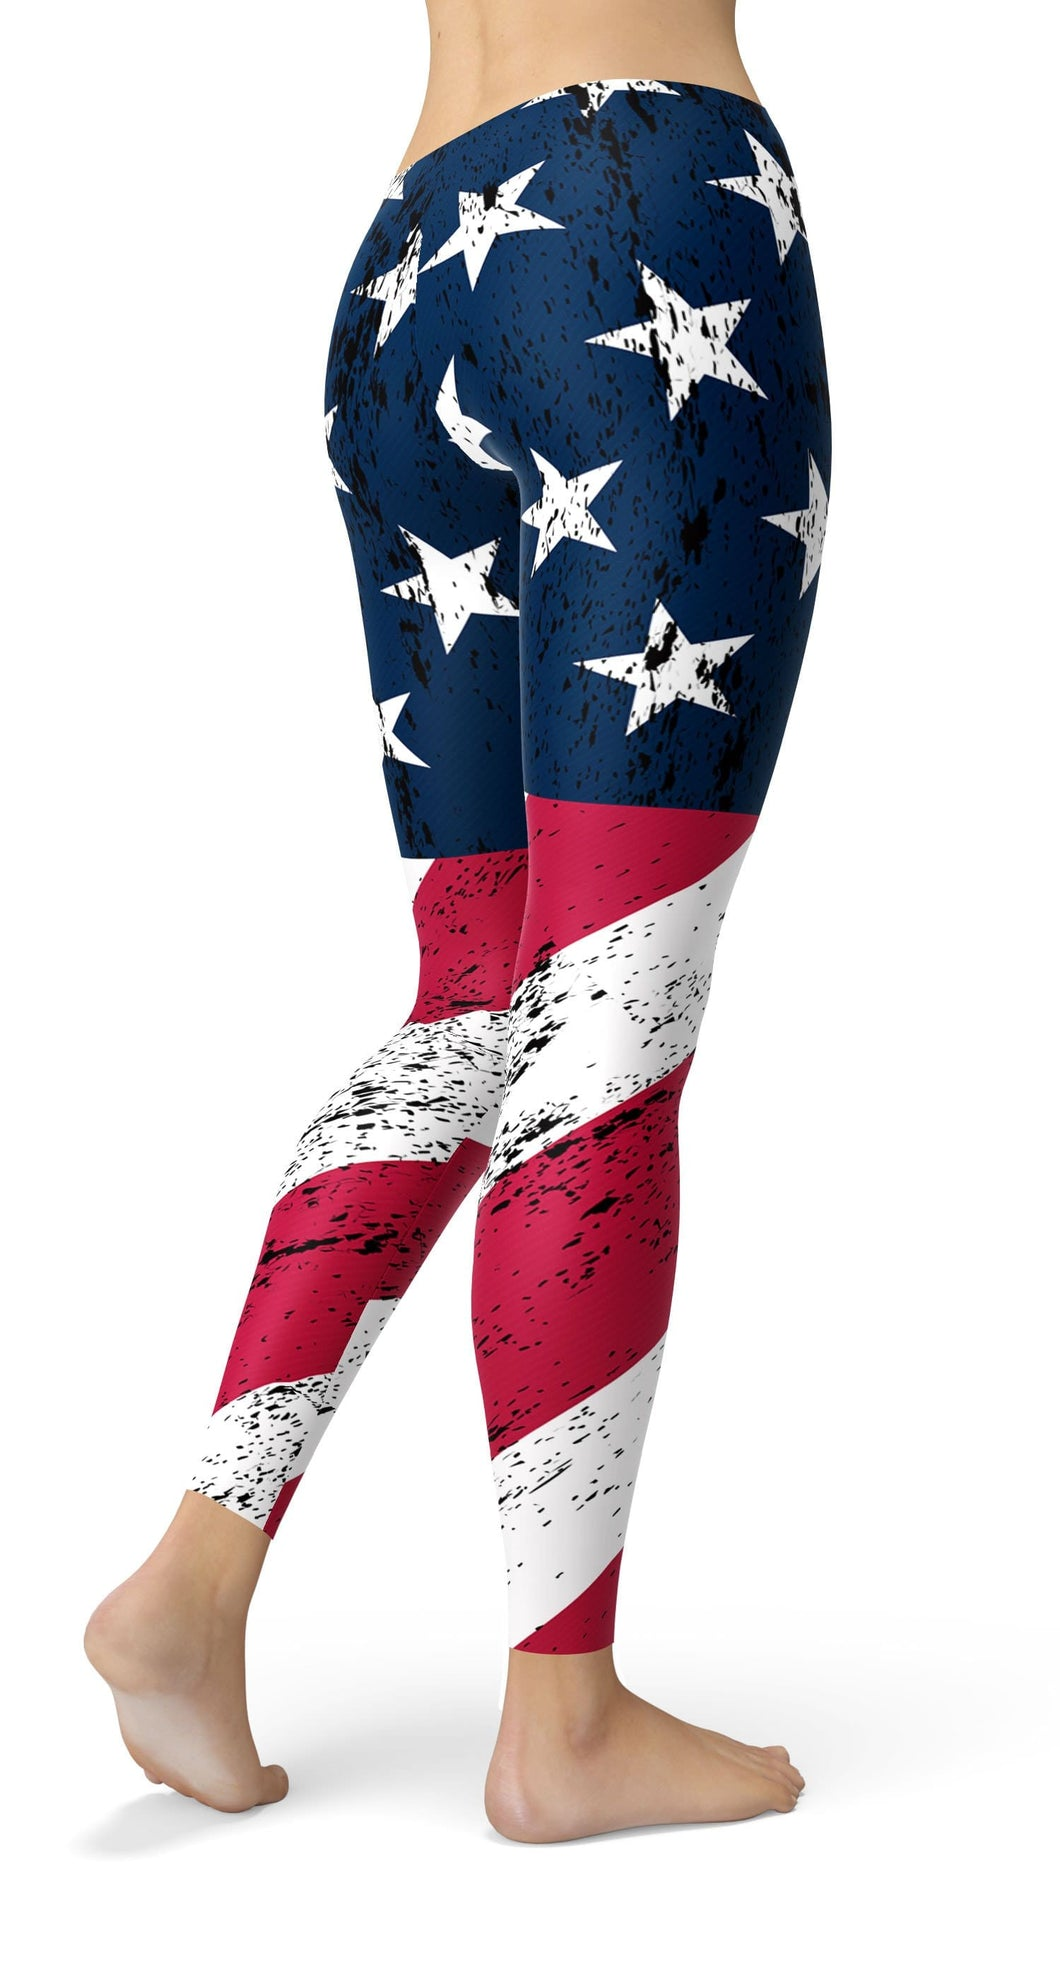 AMERICAN FLAG LEGGINGS - US FITGIRLS